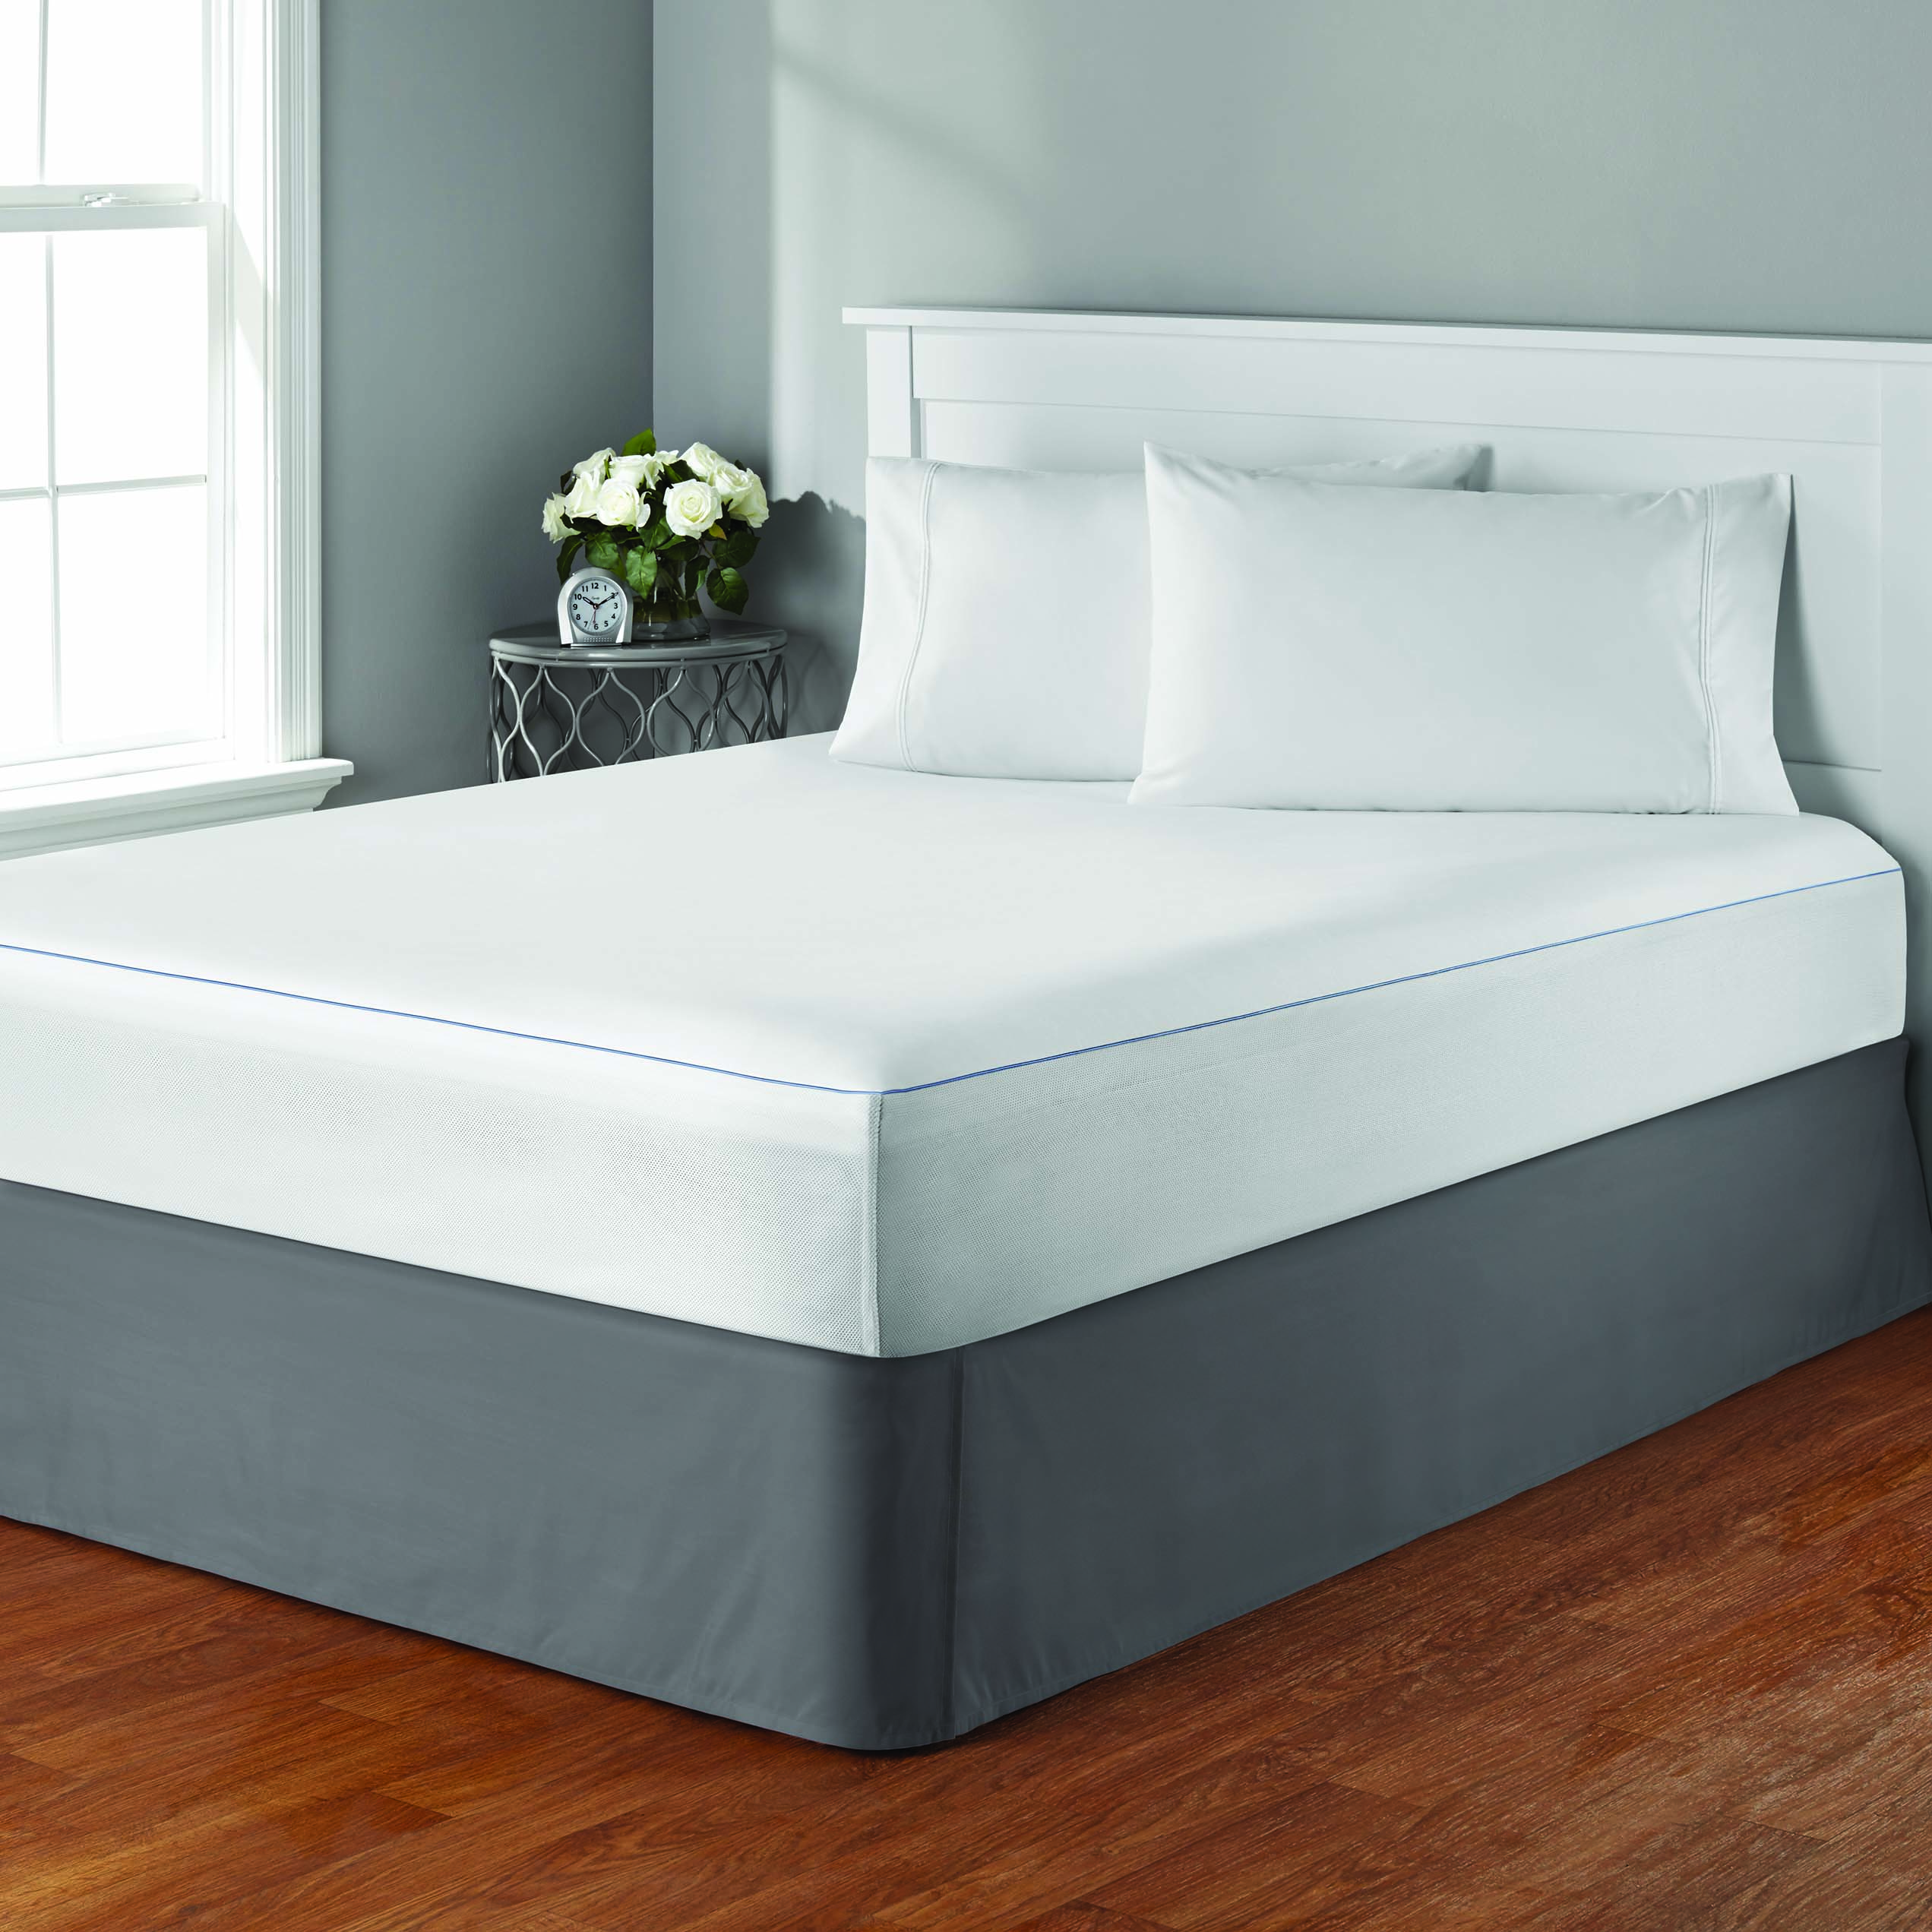 Mainstays Cooling Comfort, Luxury Fitted Mattress Protector, King Size